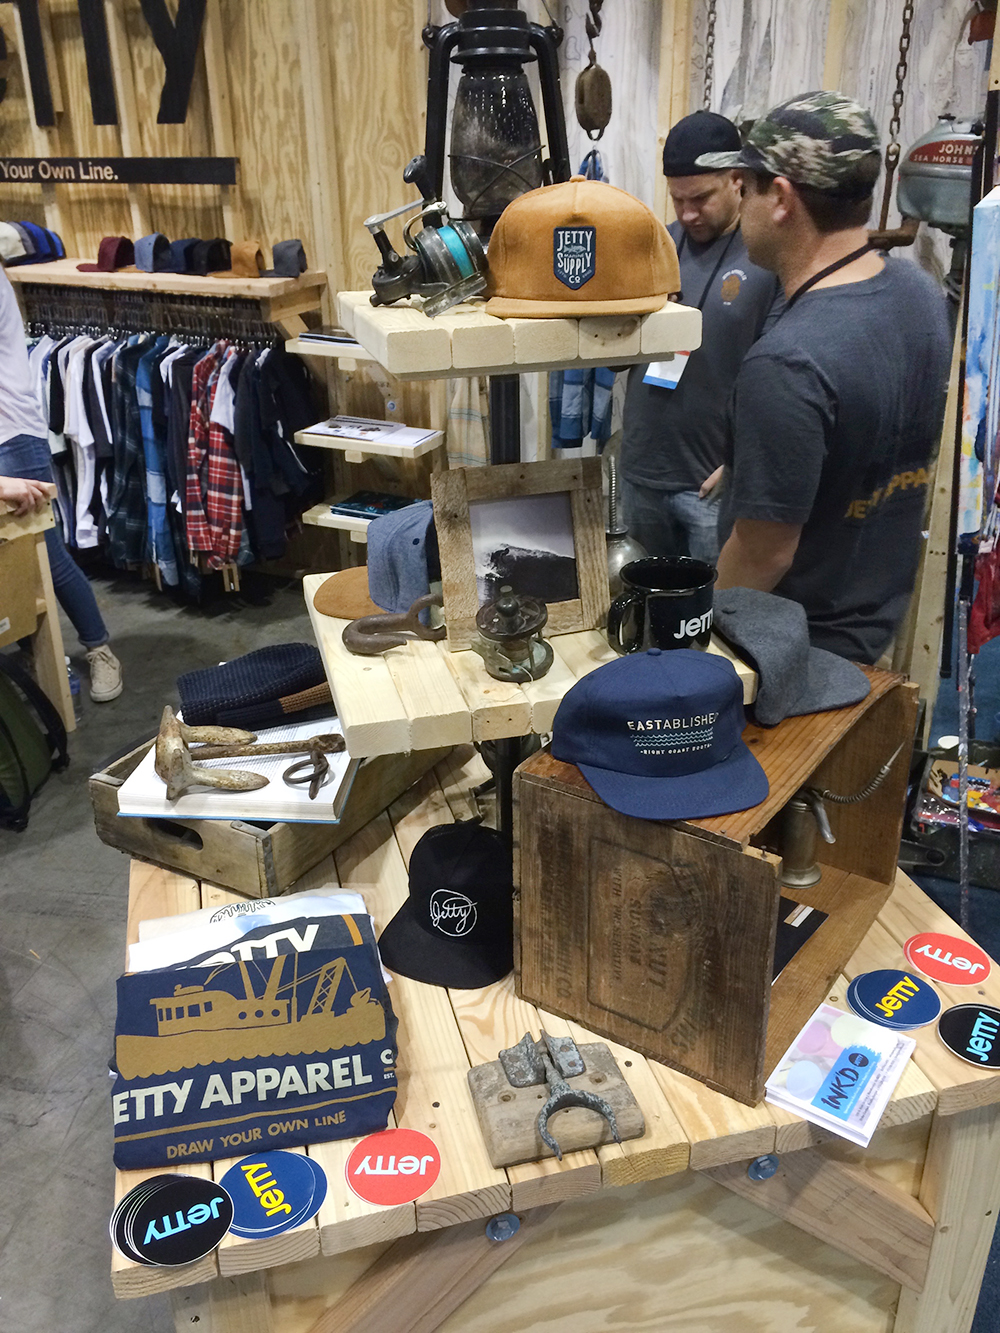 Our friends at Jetty always rocking a nice hand crafted booth.